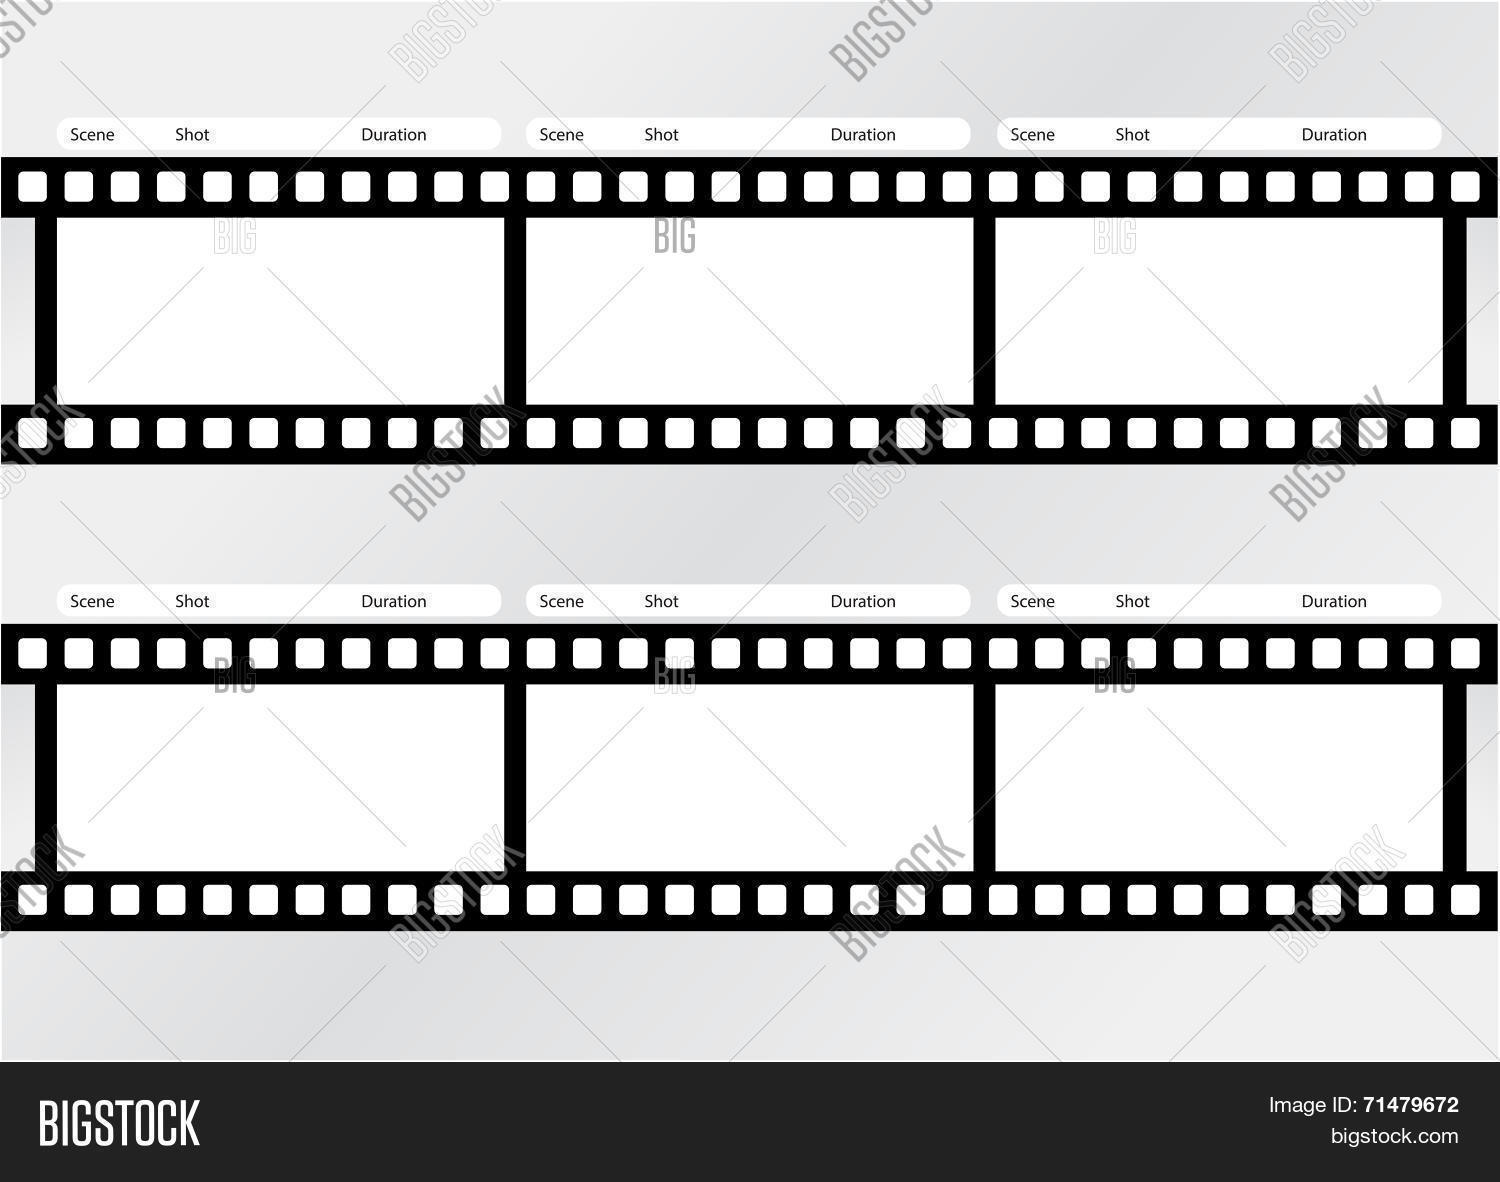 Professional Storyboard Film Strip Vector & Photo  Bigstock. Apa Format Research Paper Template. Candy For Graduation Party. Dvd Case Label Template. Beer Label Template Psd. Fake Magazine Covers Free Online. Katz Graduate School Of Business. Graduation Props For Photography. Movie Night Flyer Template